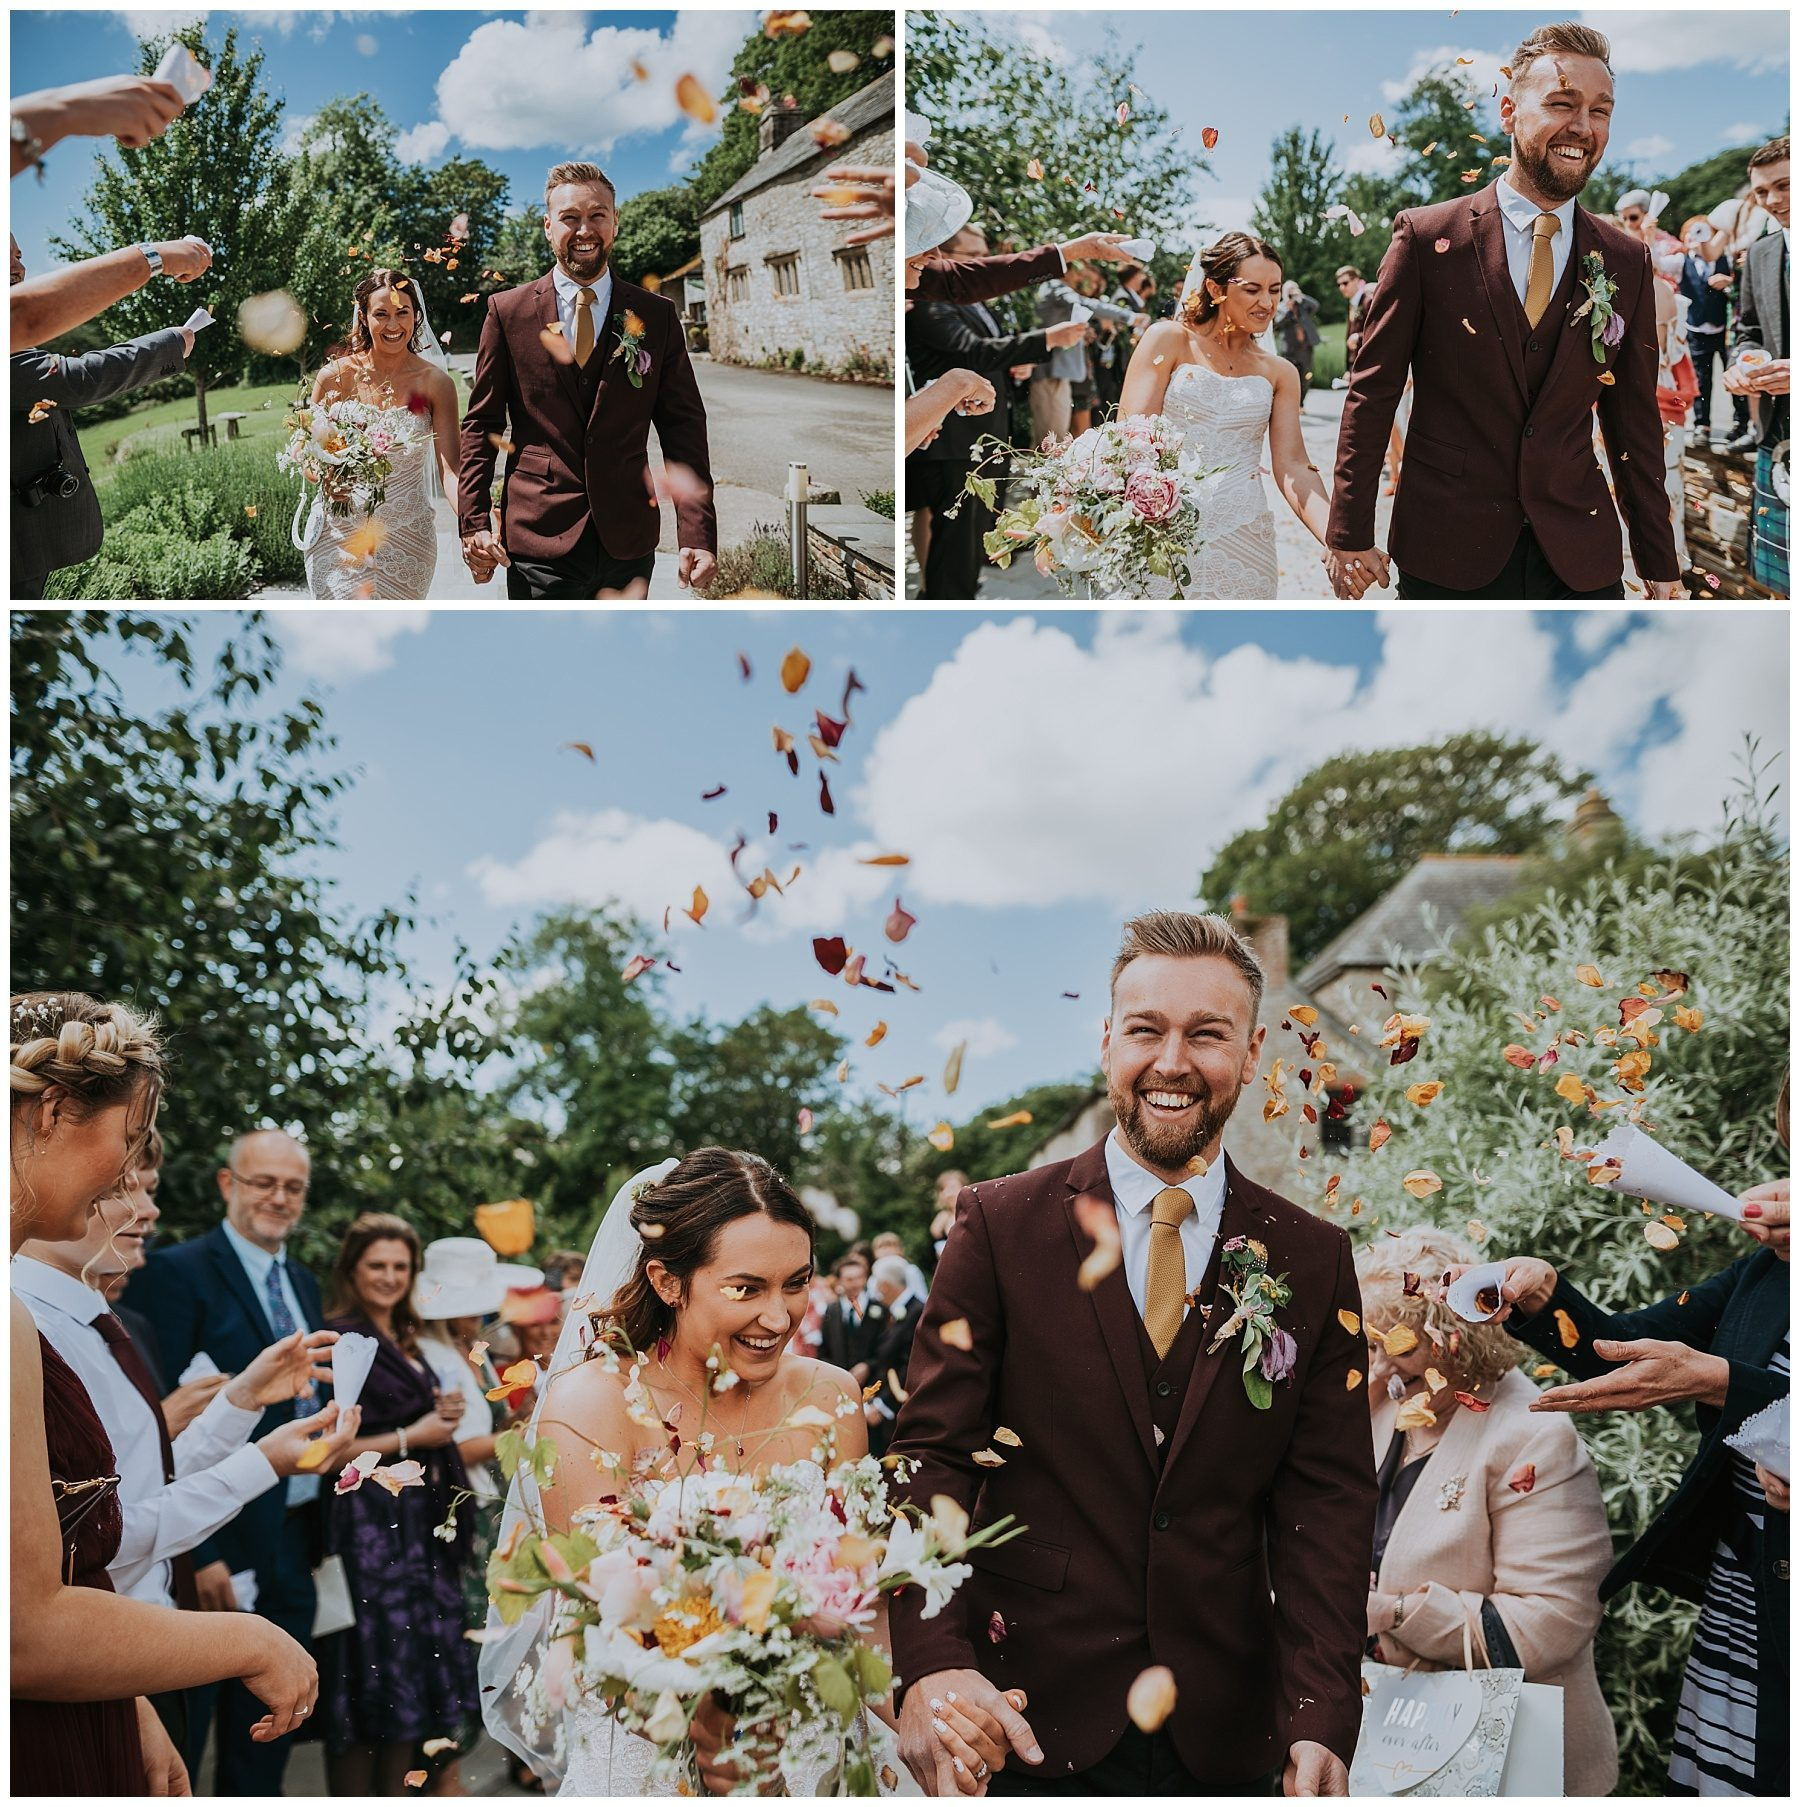 Pengenna Manor cornwall wedding confetti shot photography